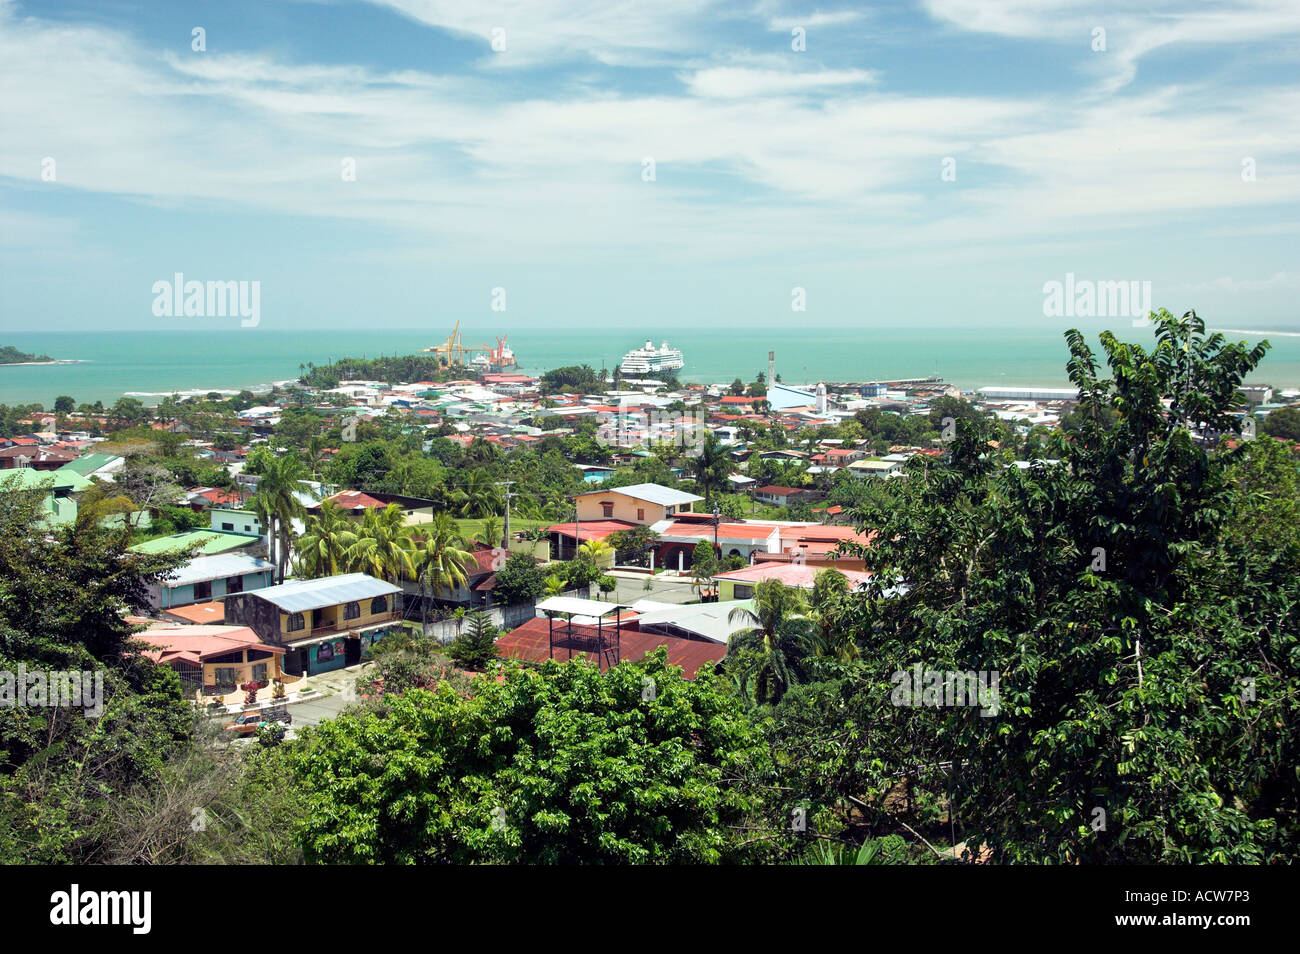 The port city of puerto limon costa rica and its cruise and container stock photo 7561890 alamy - Puerto limon costa rica ...